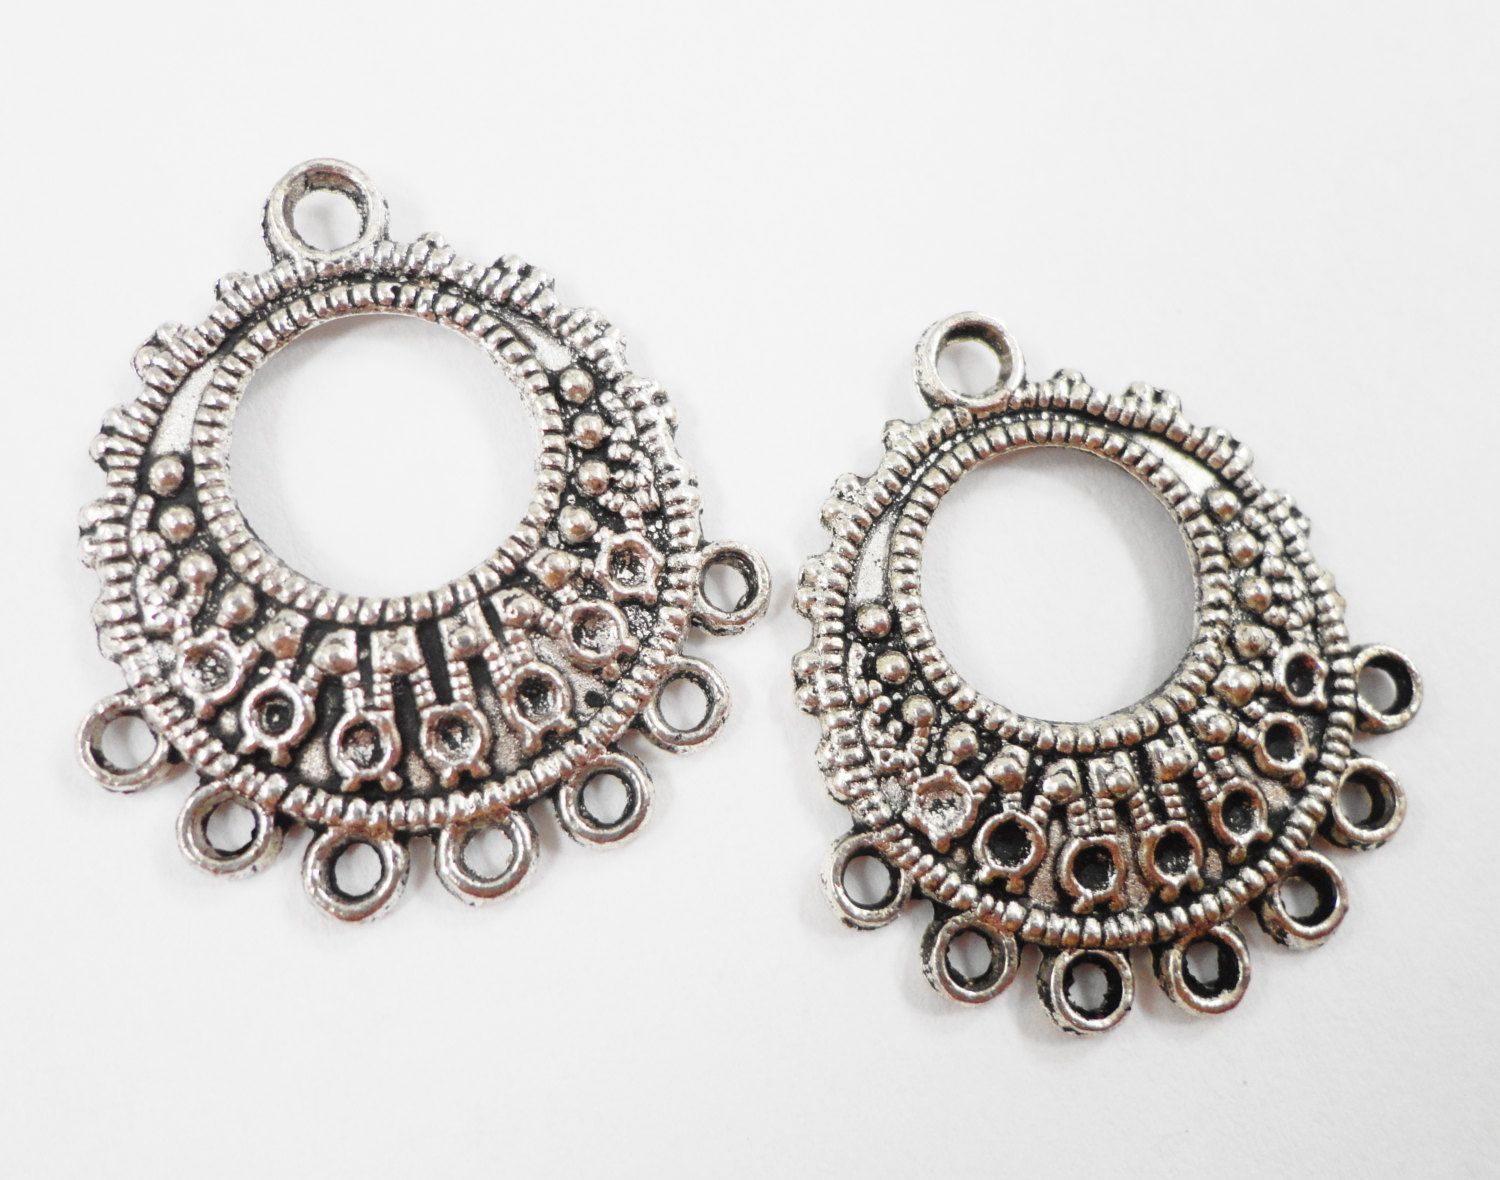 Hoop chandelier earring findings 26x23mm 7 to 1 antique silver hoop chandelier earring findings 26x23mm 7 to 1 antique silver earring connectors connector pendants jewelry connector findings 6pcs arubaitofo Image collections